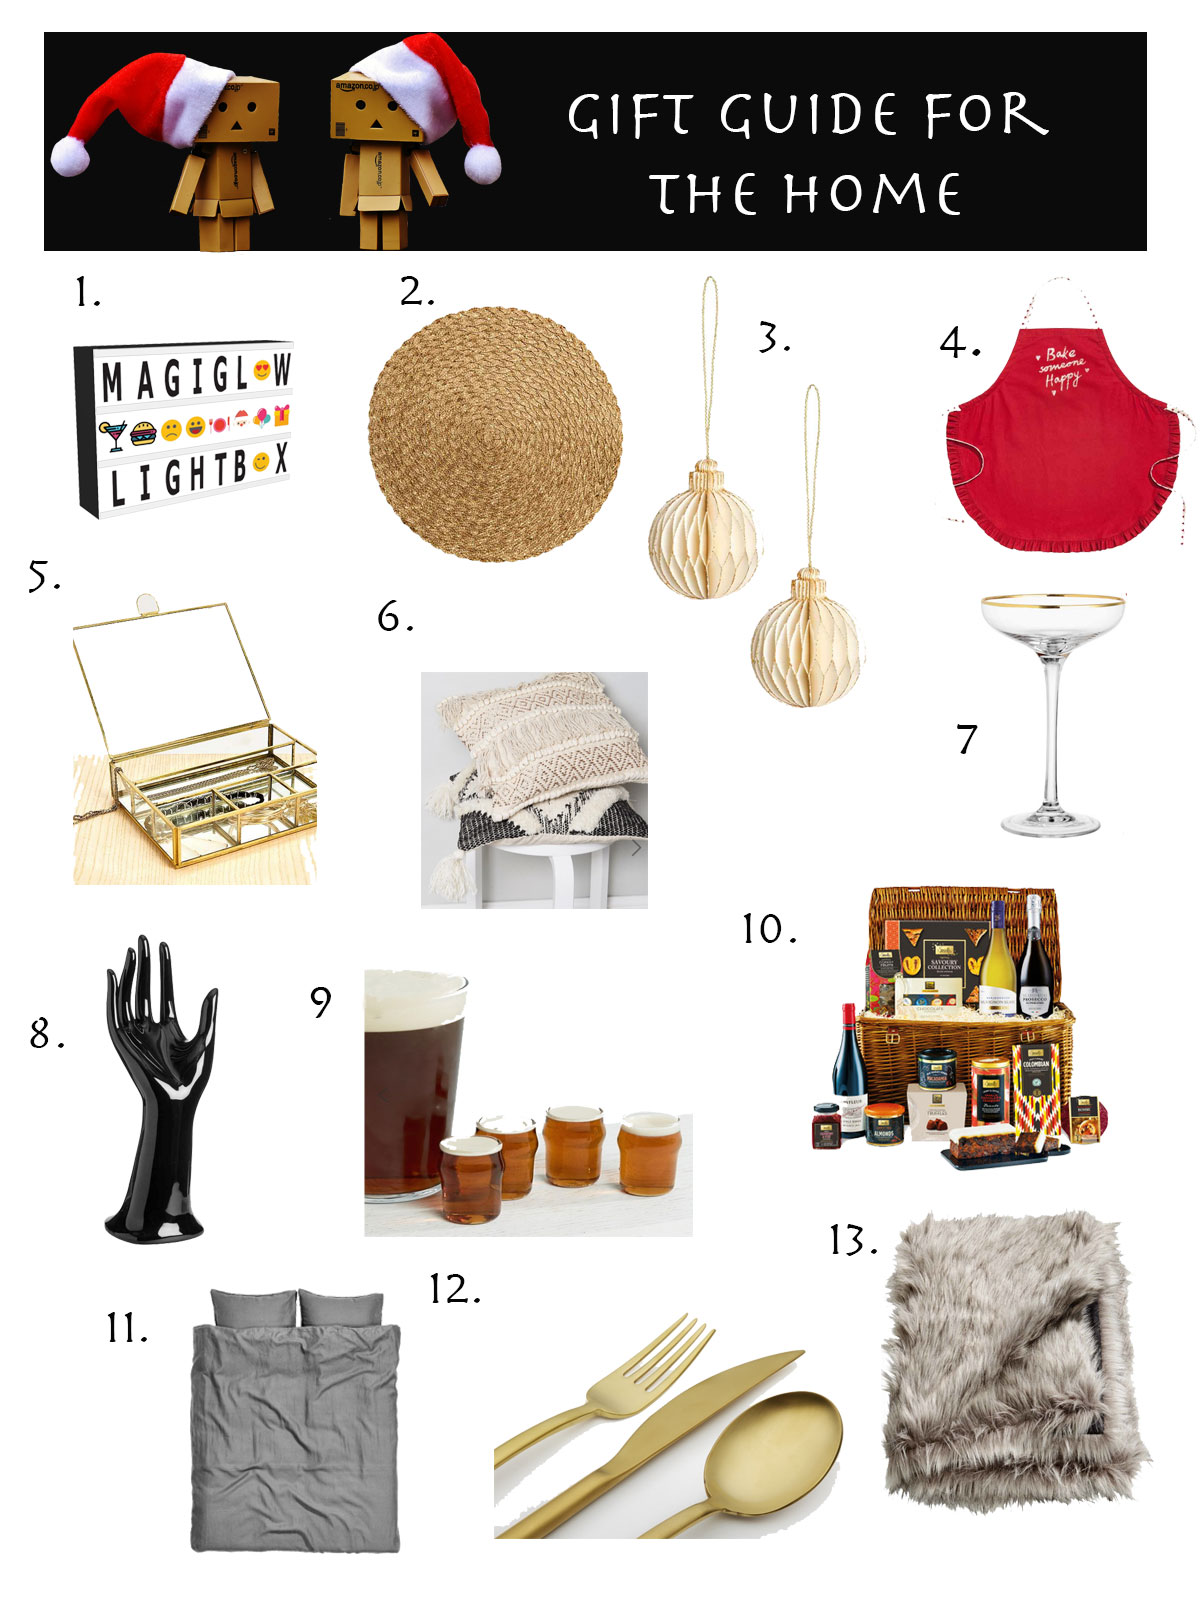 Gift Guide for the home - Holiday Gift Guide for the Home